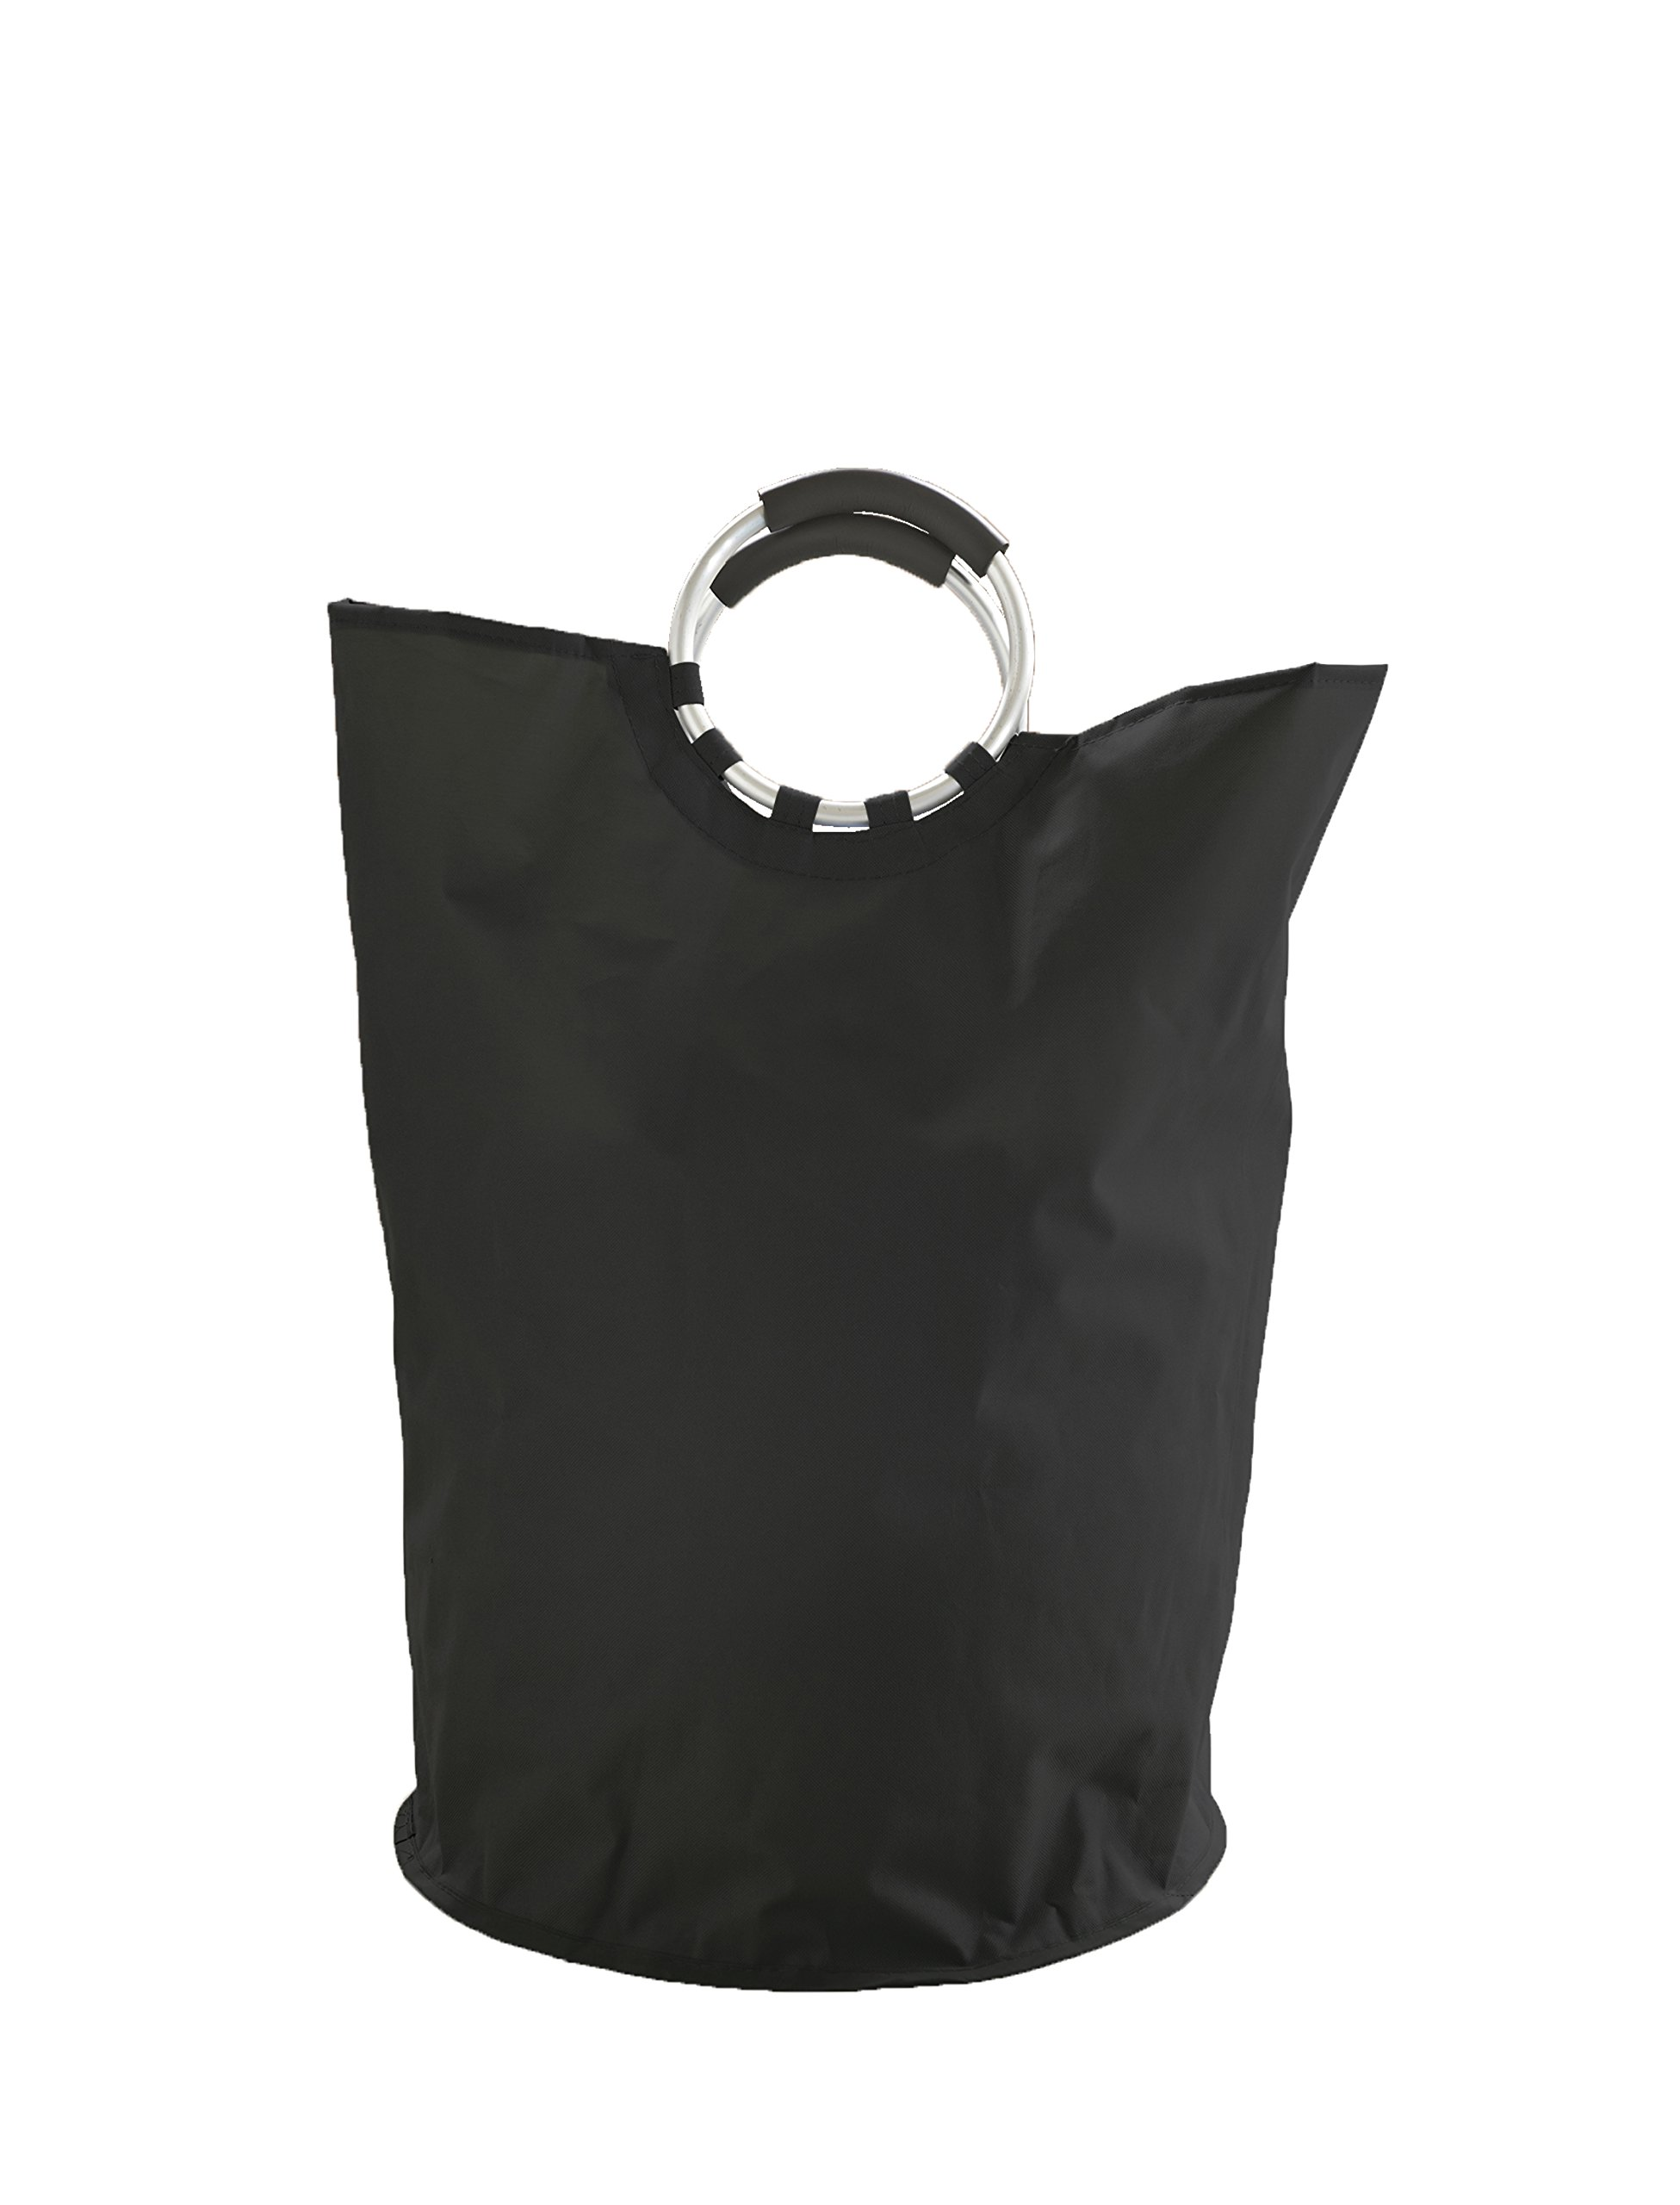 Hotel Oxford Laundry Bag, Black